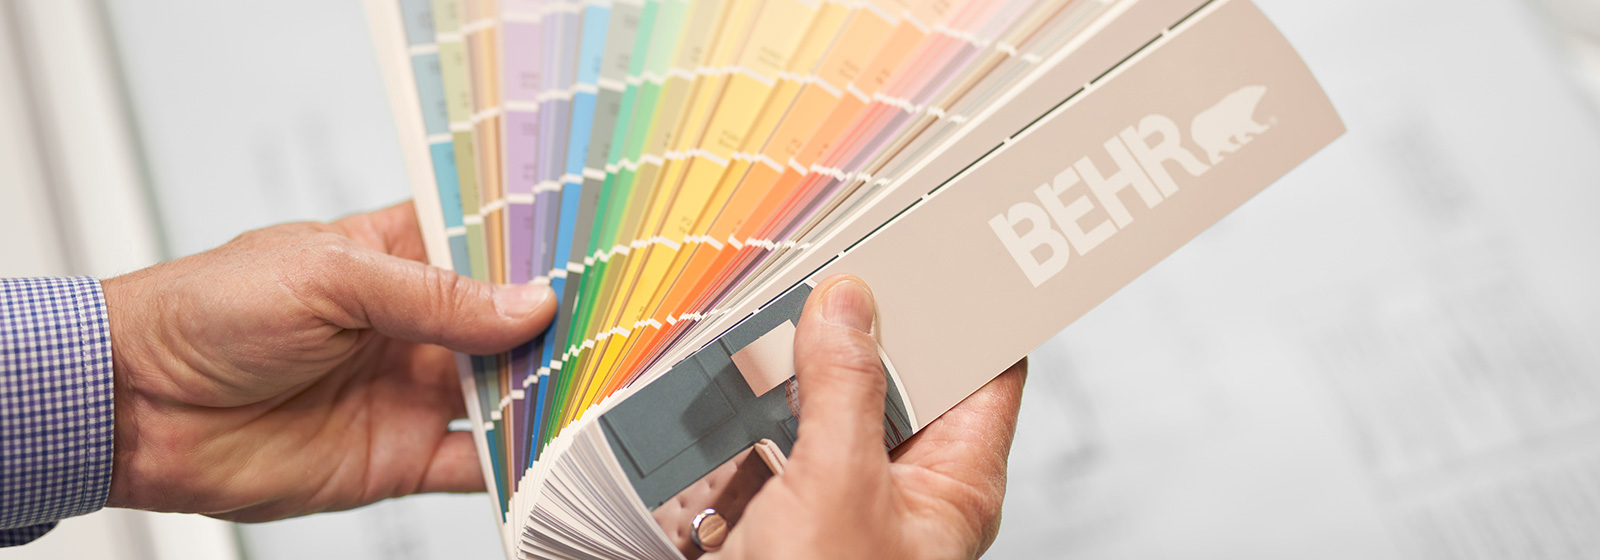 A large image of a BEHR Colour Fan Deck held by a hand.